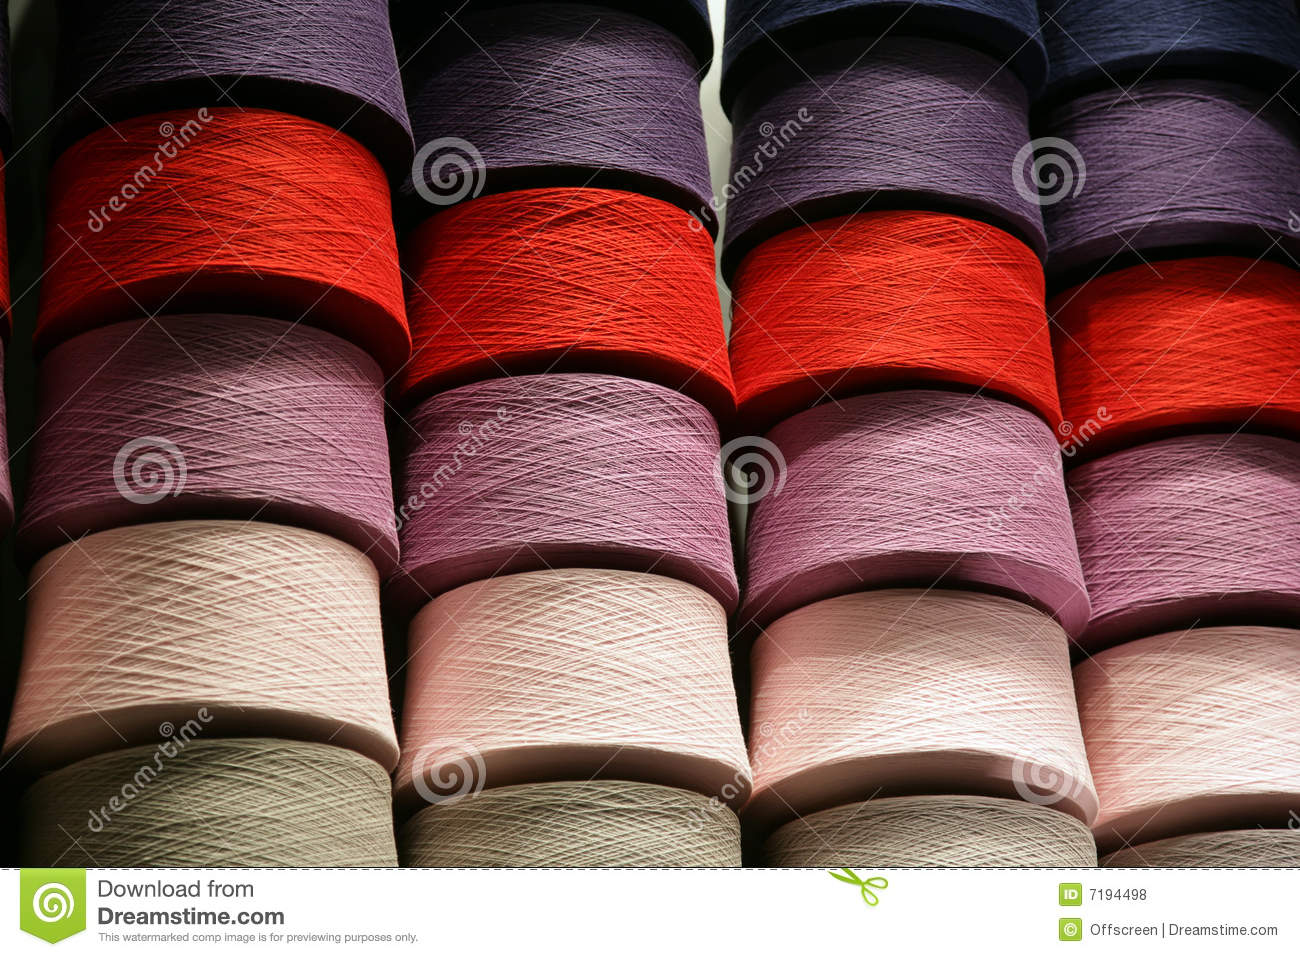 Bobbins with the coloured threads